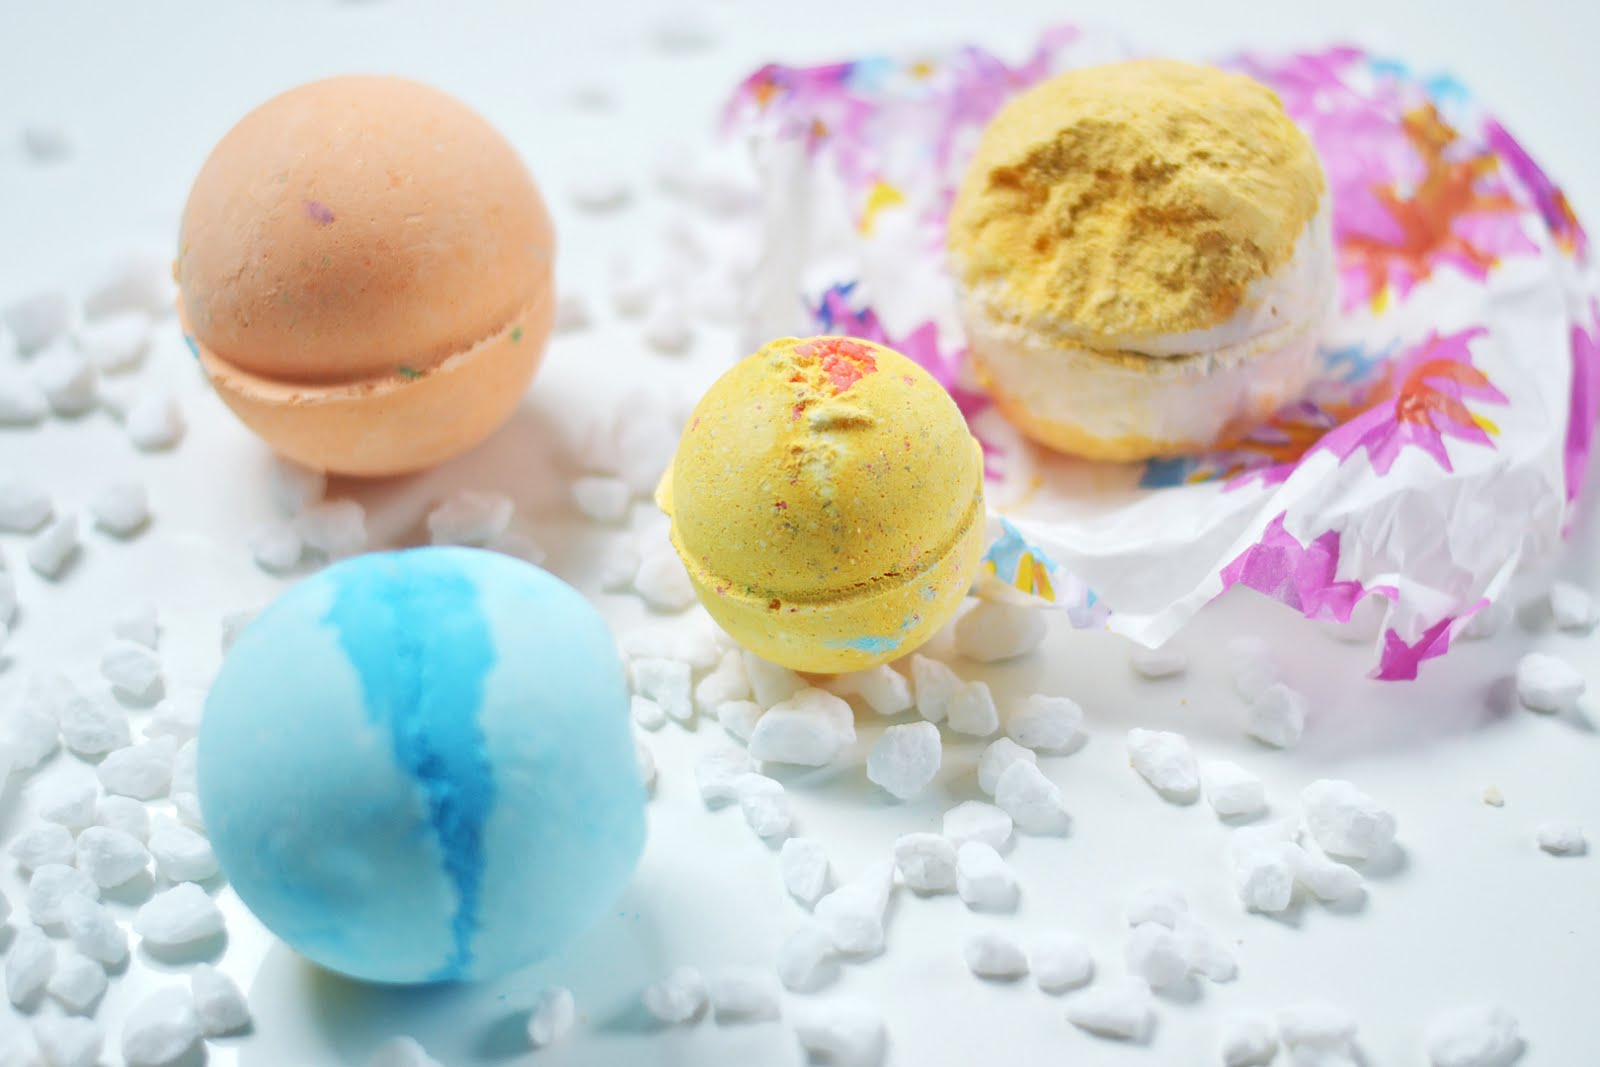 Lush bath bombs collection, Frozen, yog nog, yoga bath bomb, cinders, anti-stress, fashion blogger, review, belgian, belgische blogger, mode blogger, trends, best, top 10